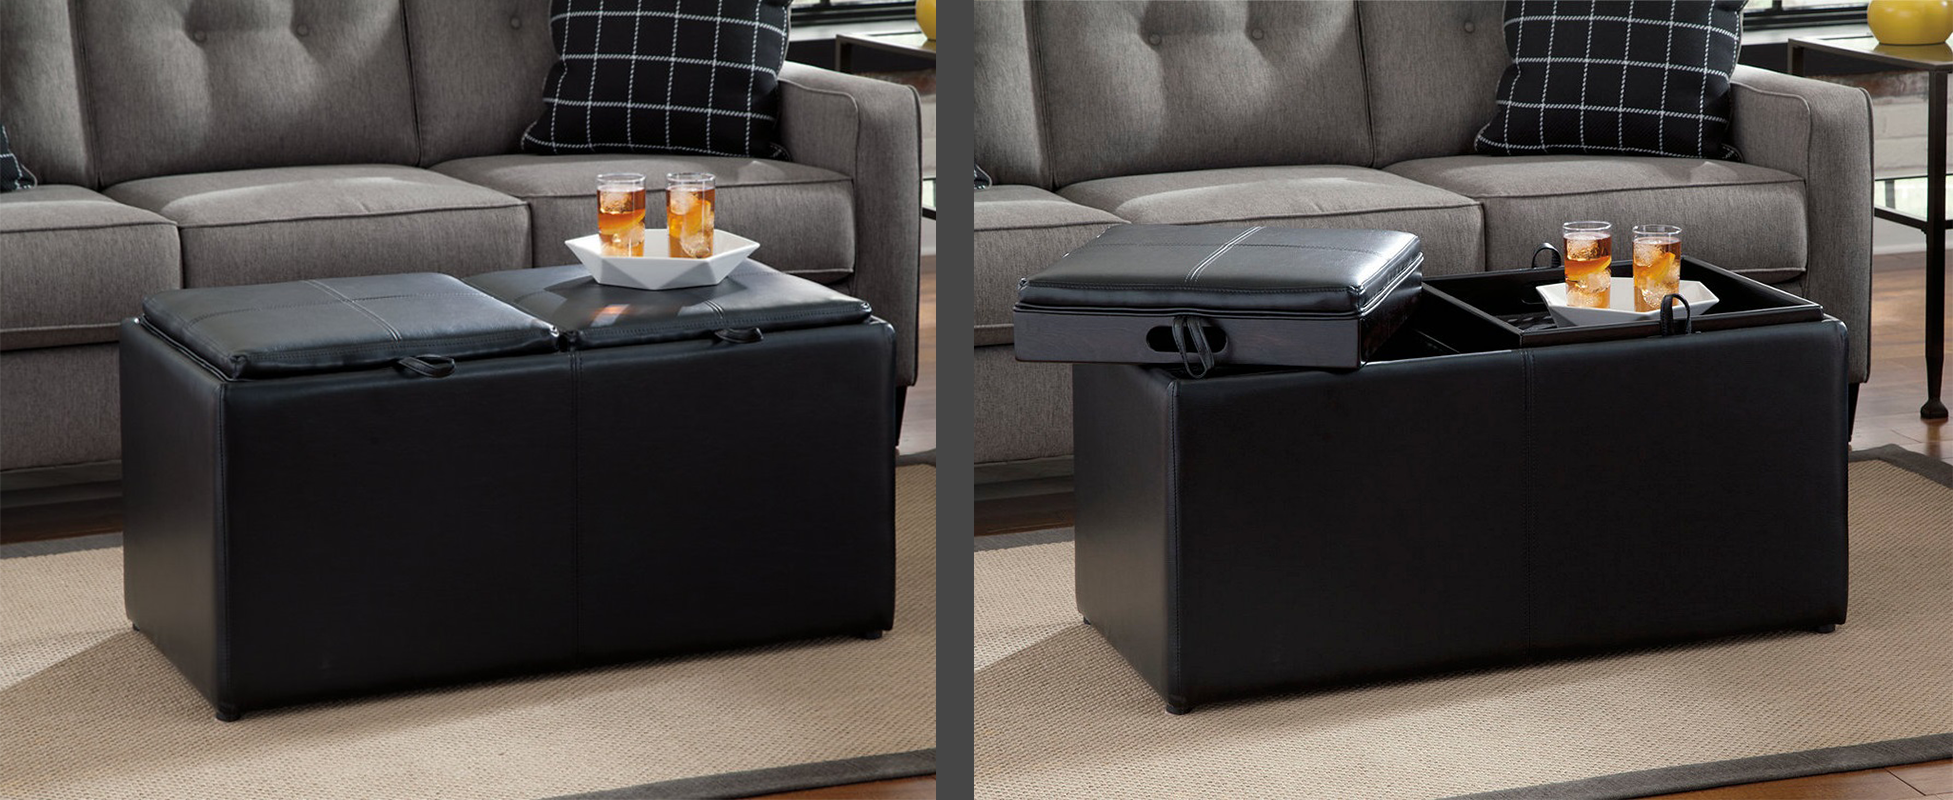 two images of a black ottoman shown with stroage unit closed and other image shown with the storage unit open.